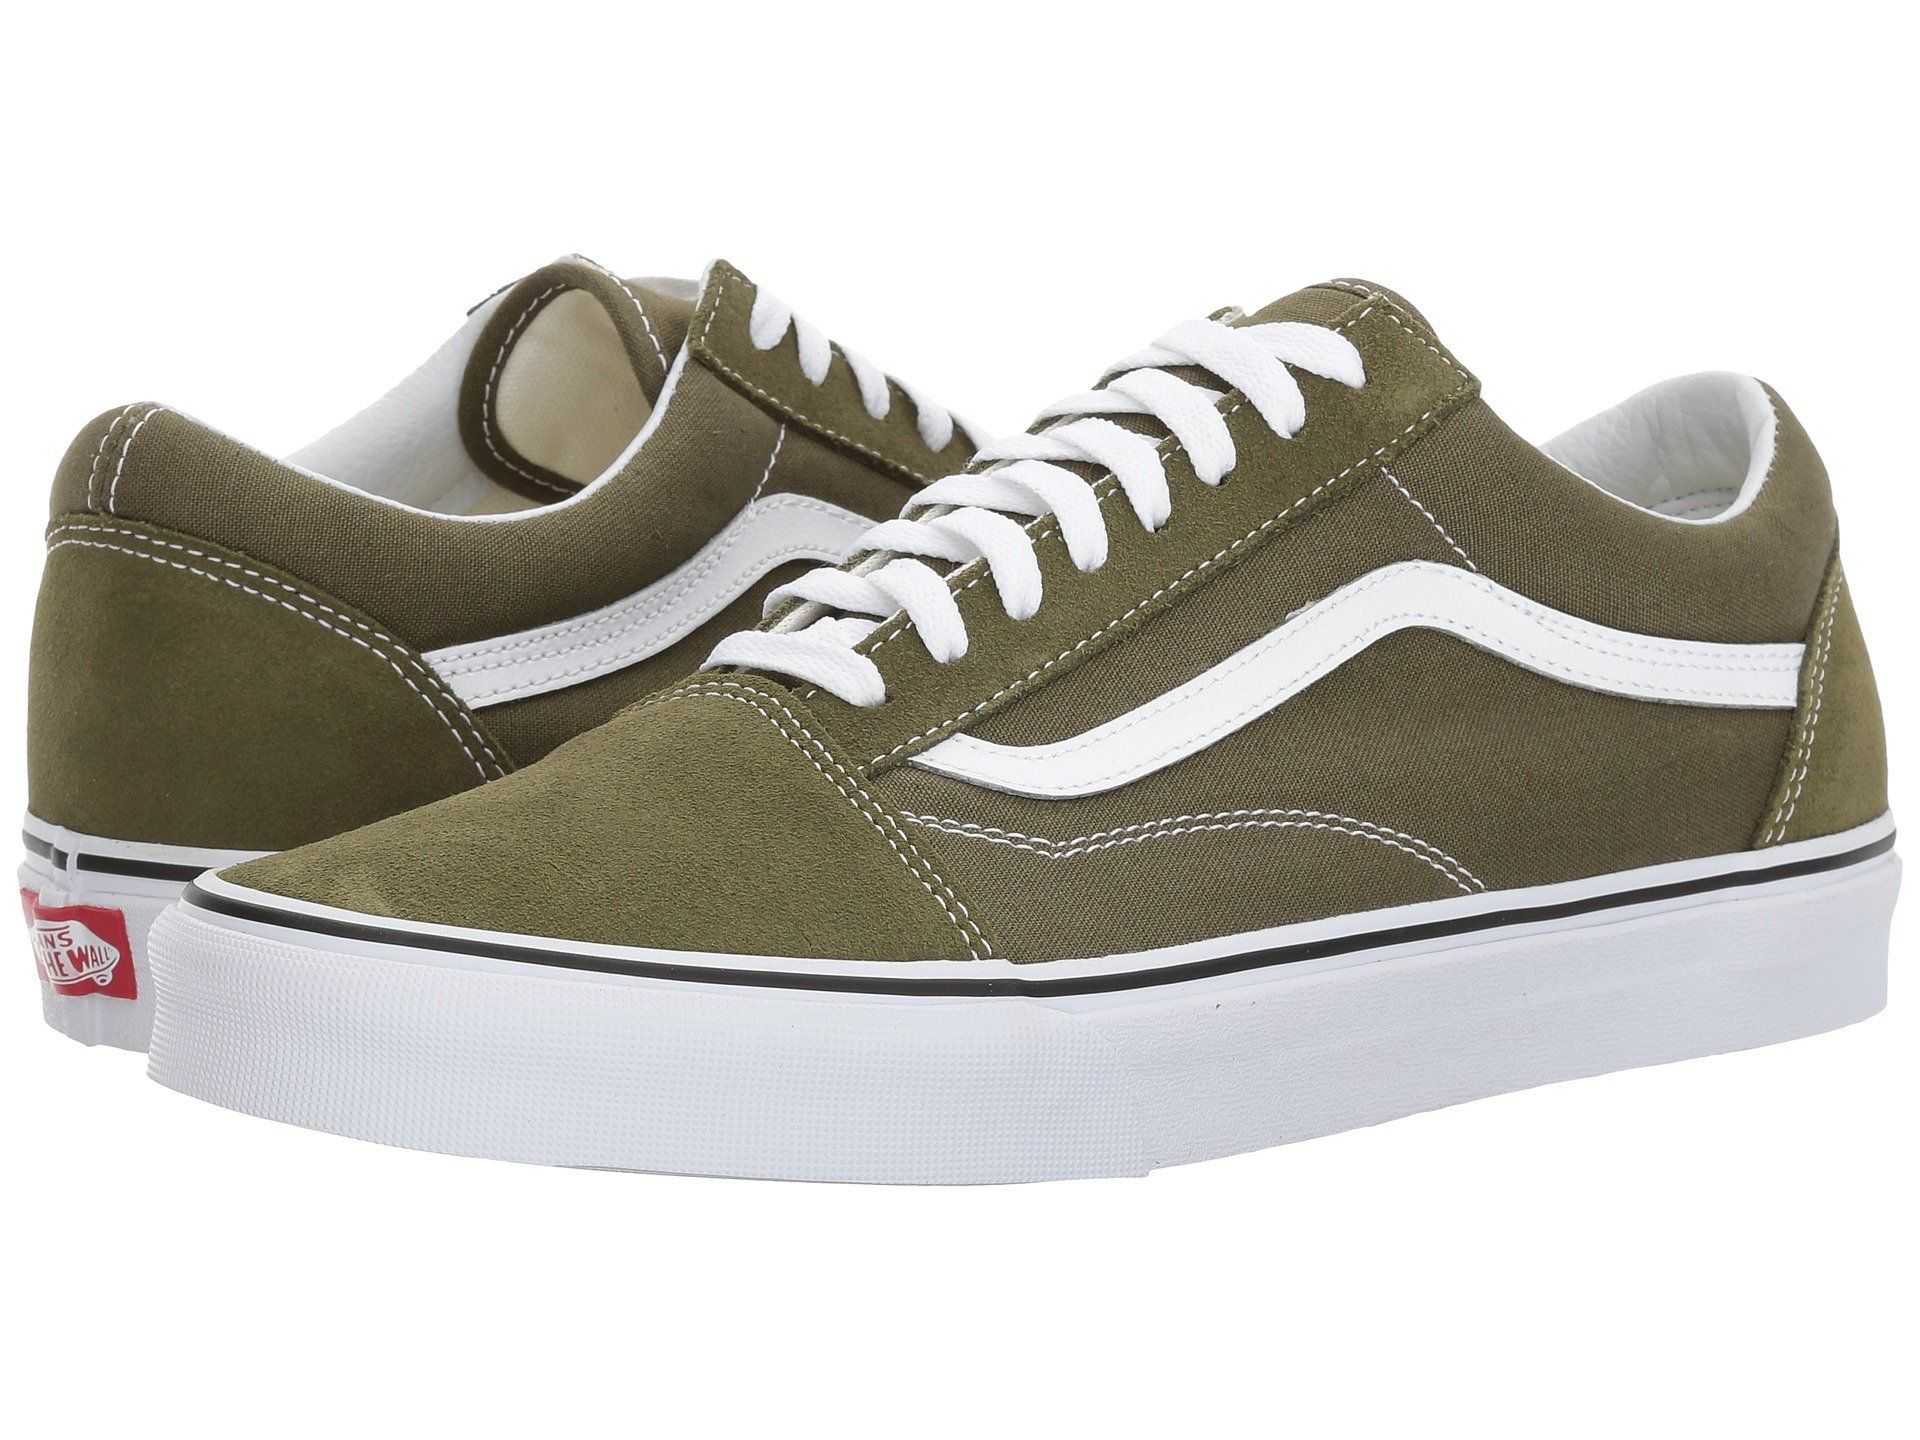 22c71958642bac VANS Old Skool™.  vans  shoes